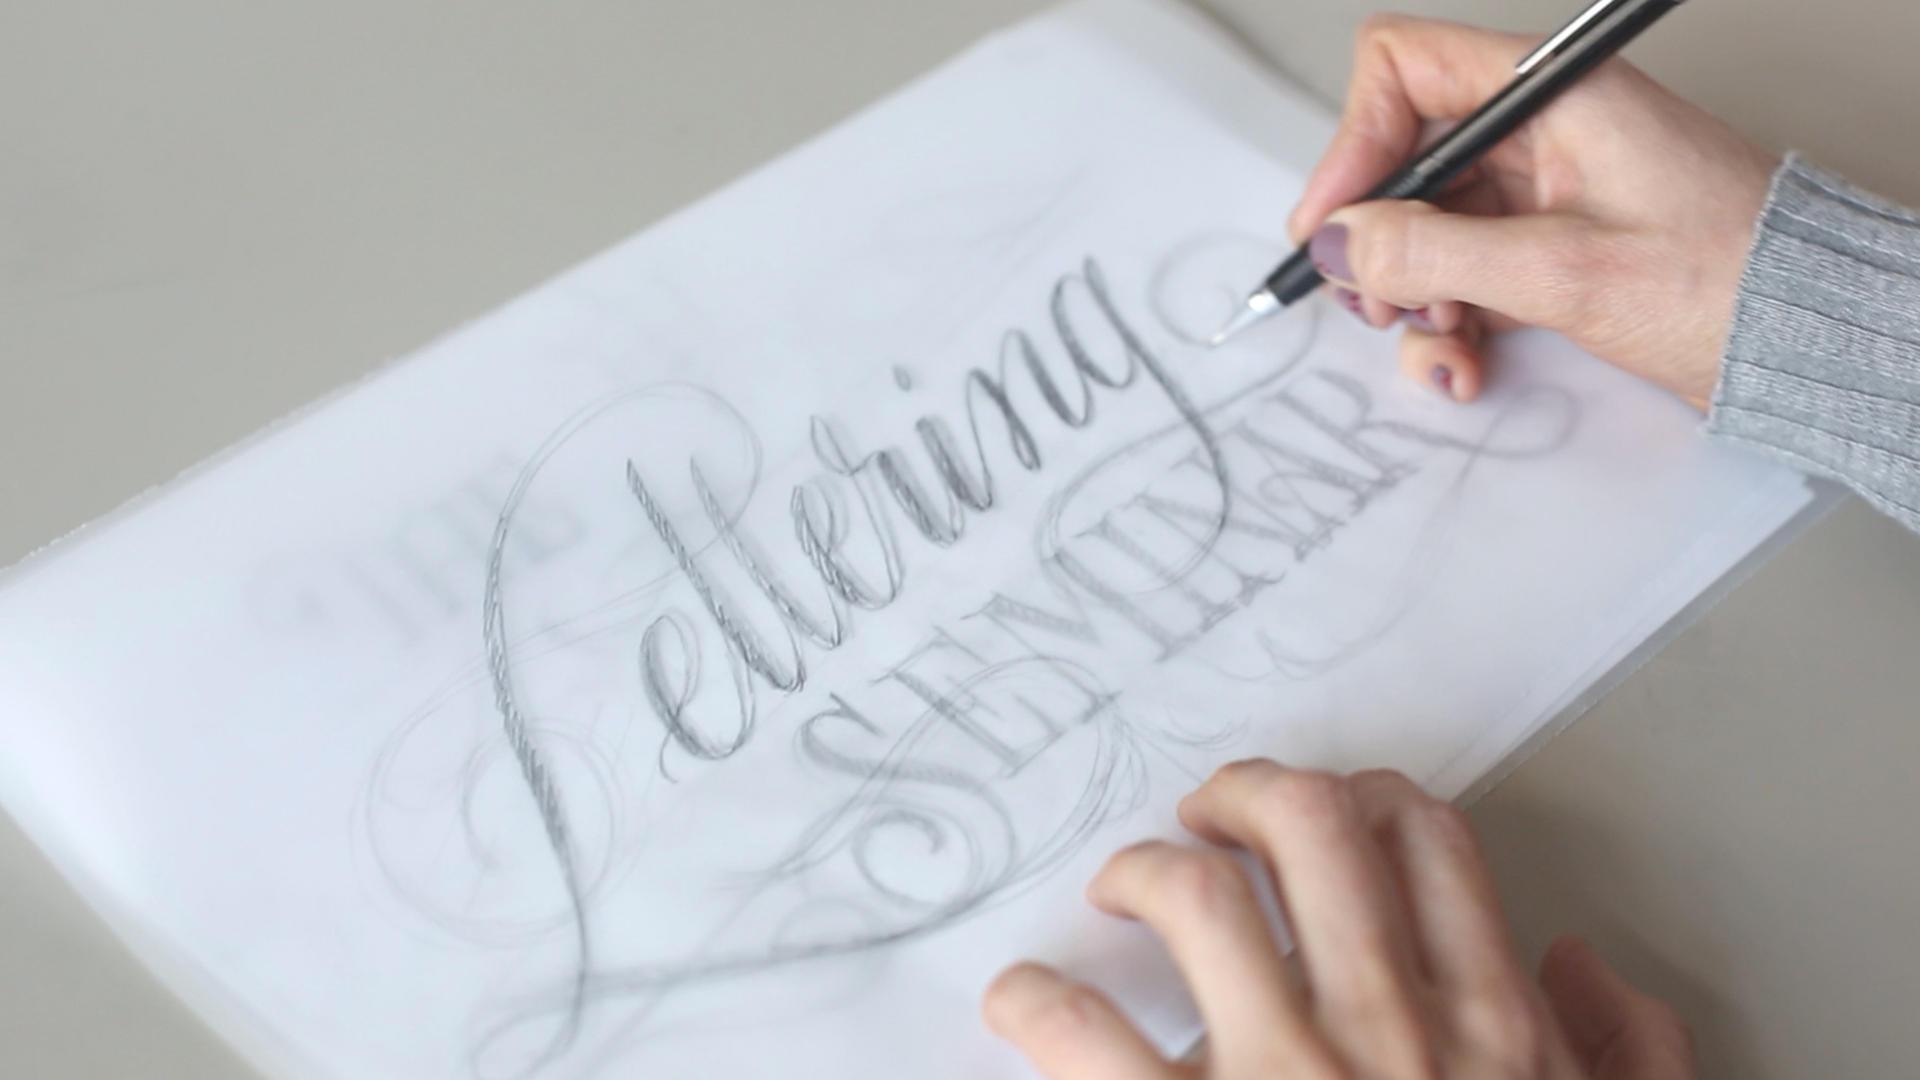 SKETCHING LETTERFORMS